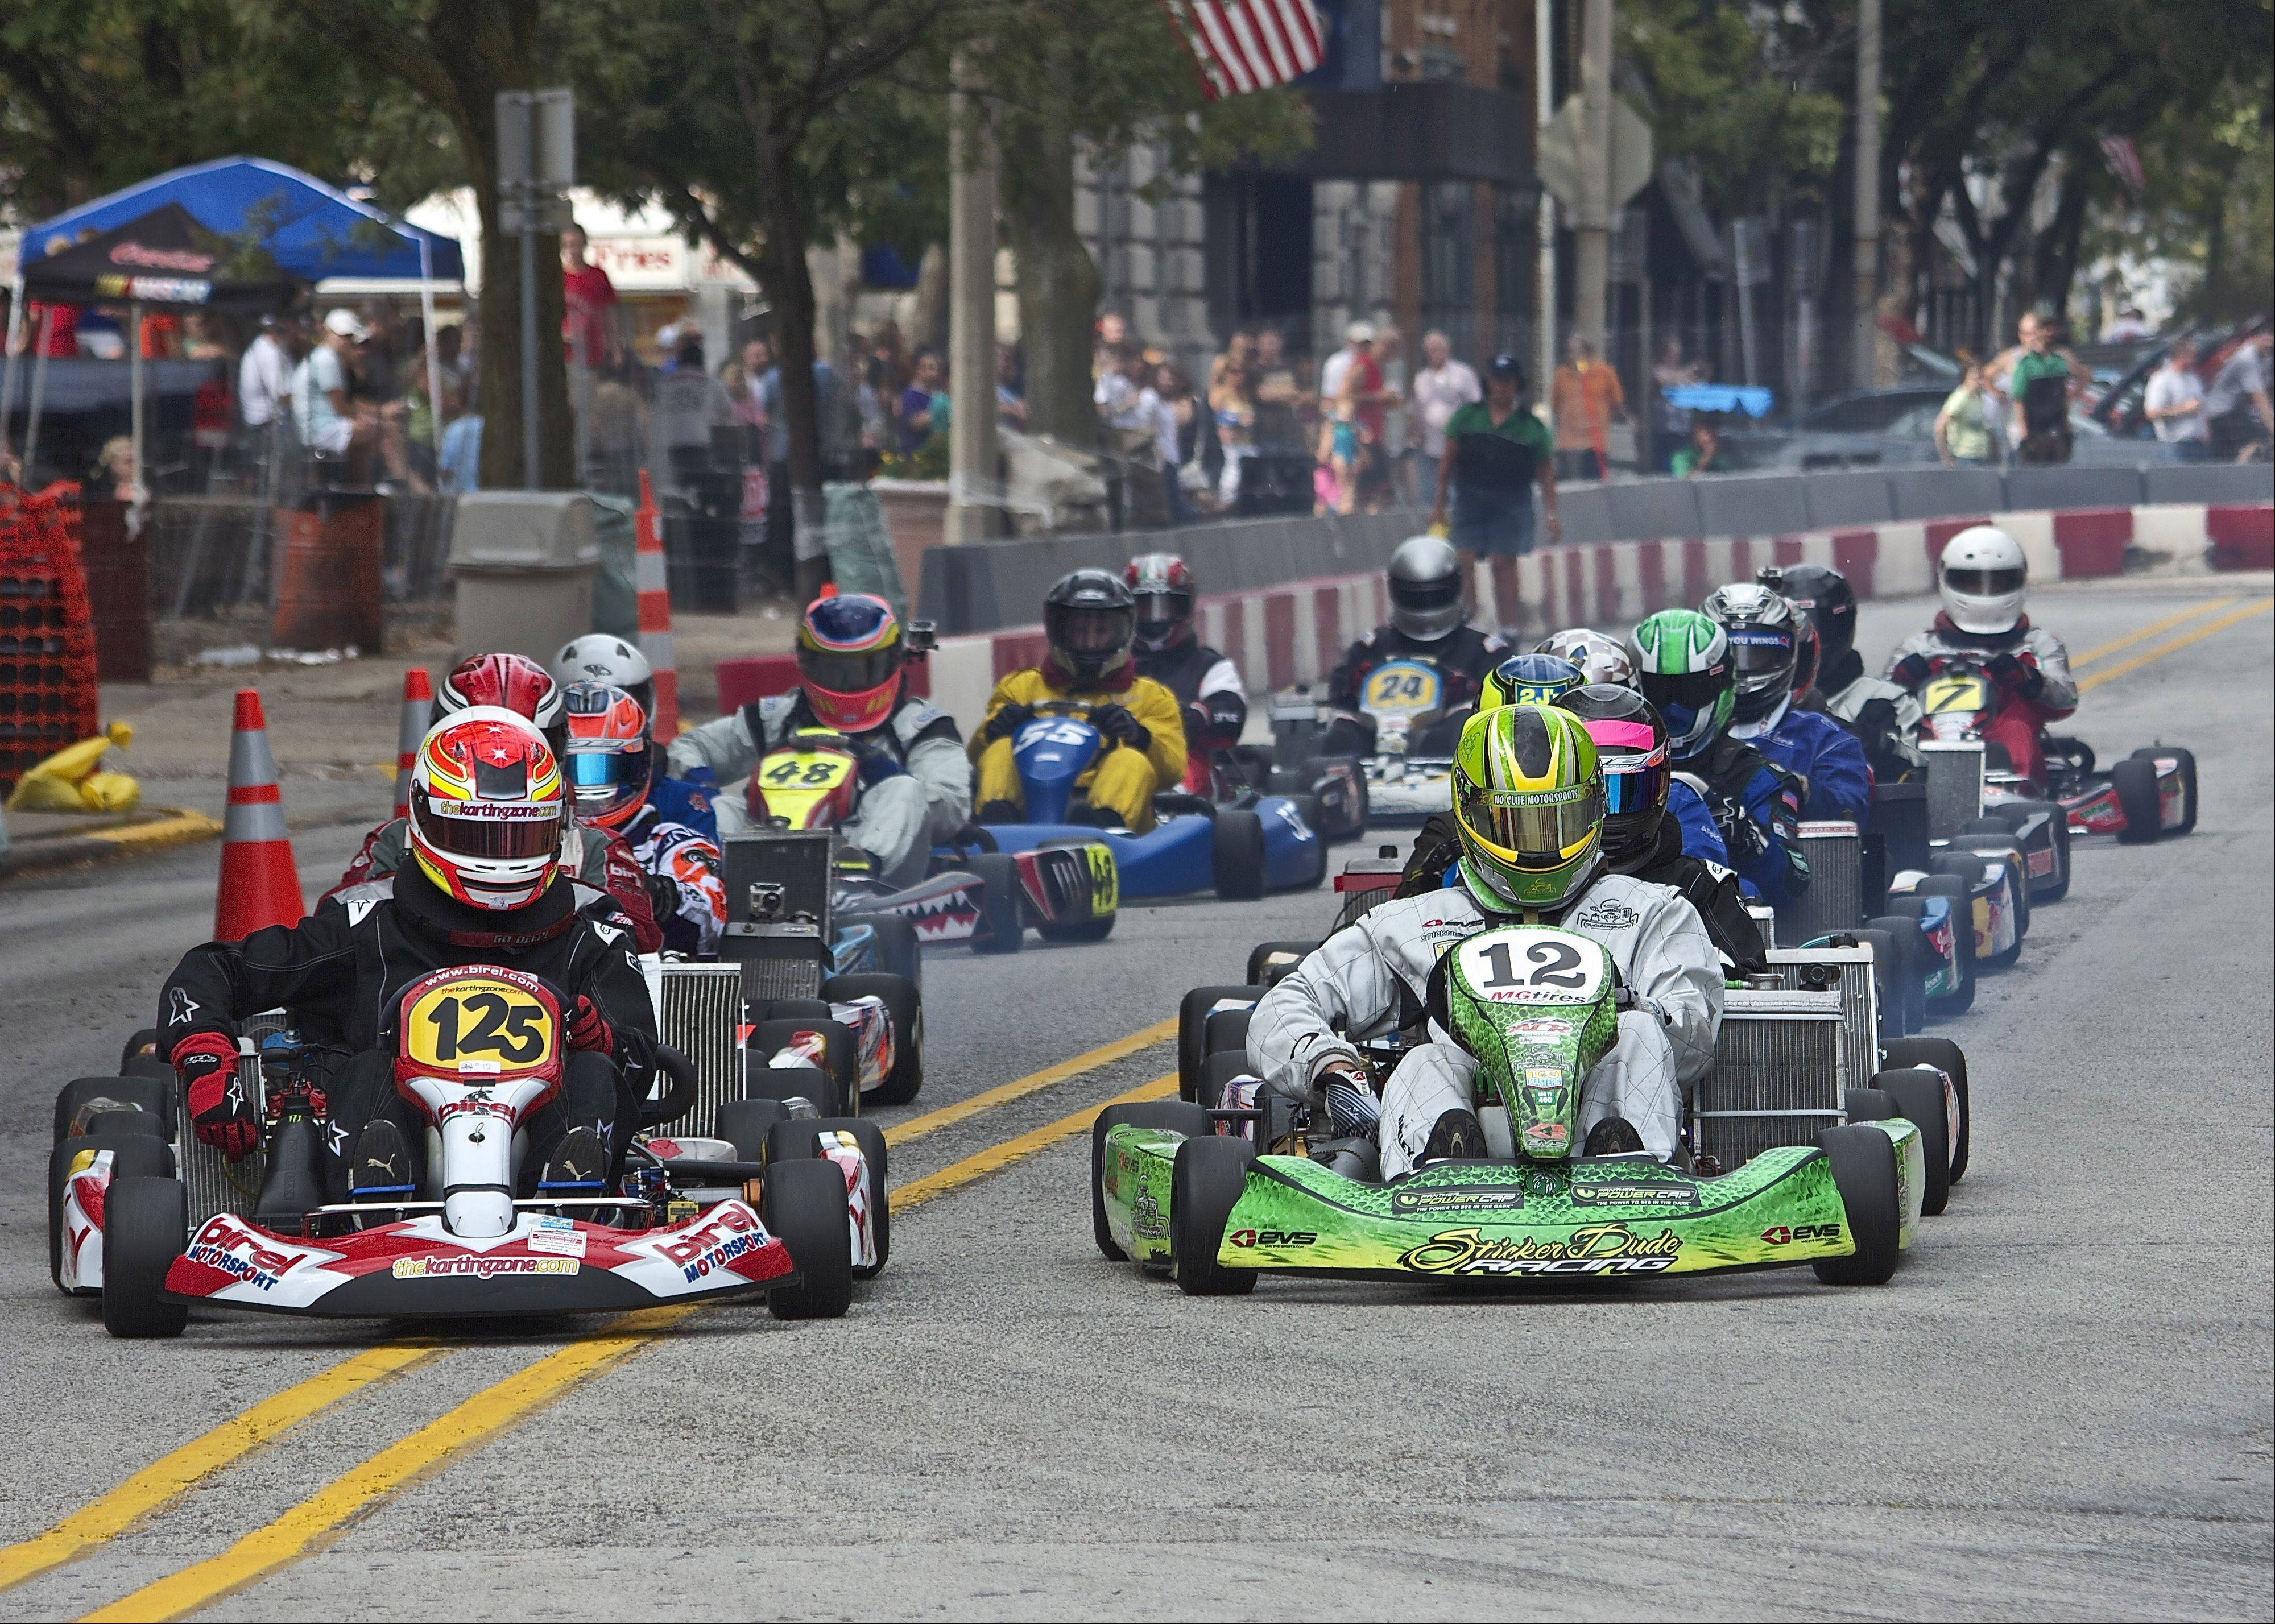 Matt Sriver, of Carpentersville, leads the field to the green flag in the TAG Masters class at the Rock Island Grand Prix during a recent Sunday. The Rock Island Grand Prix is in it's 15 year and is a street race that draws karters from all over the country and several countries.